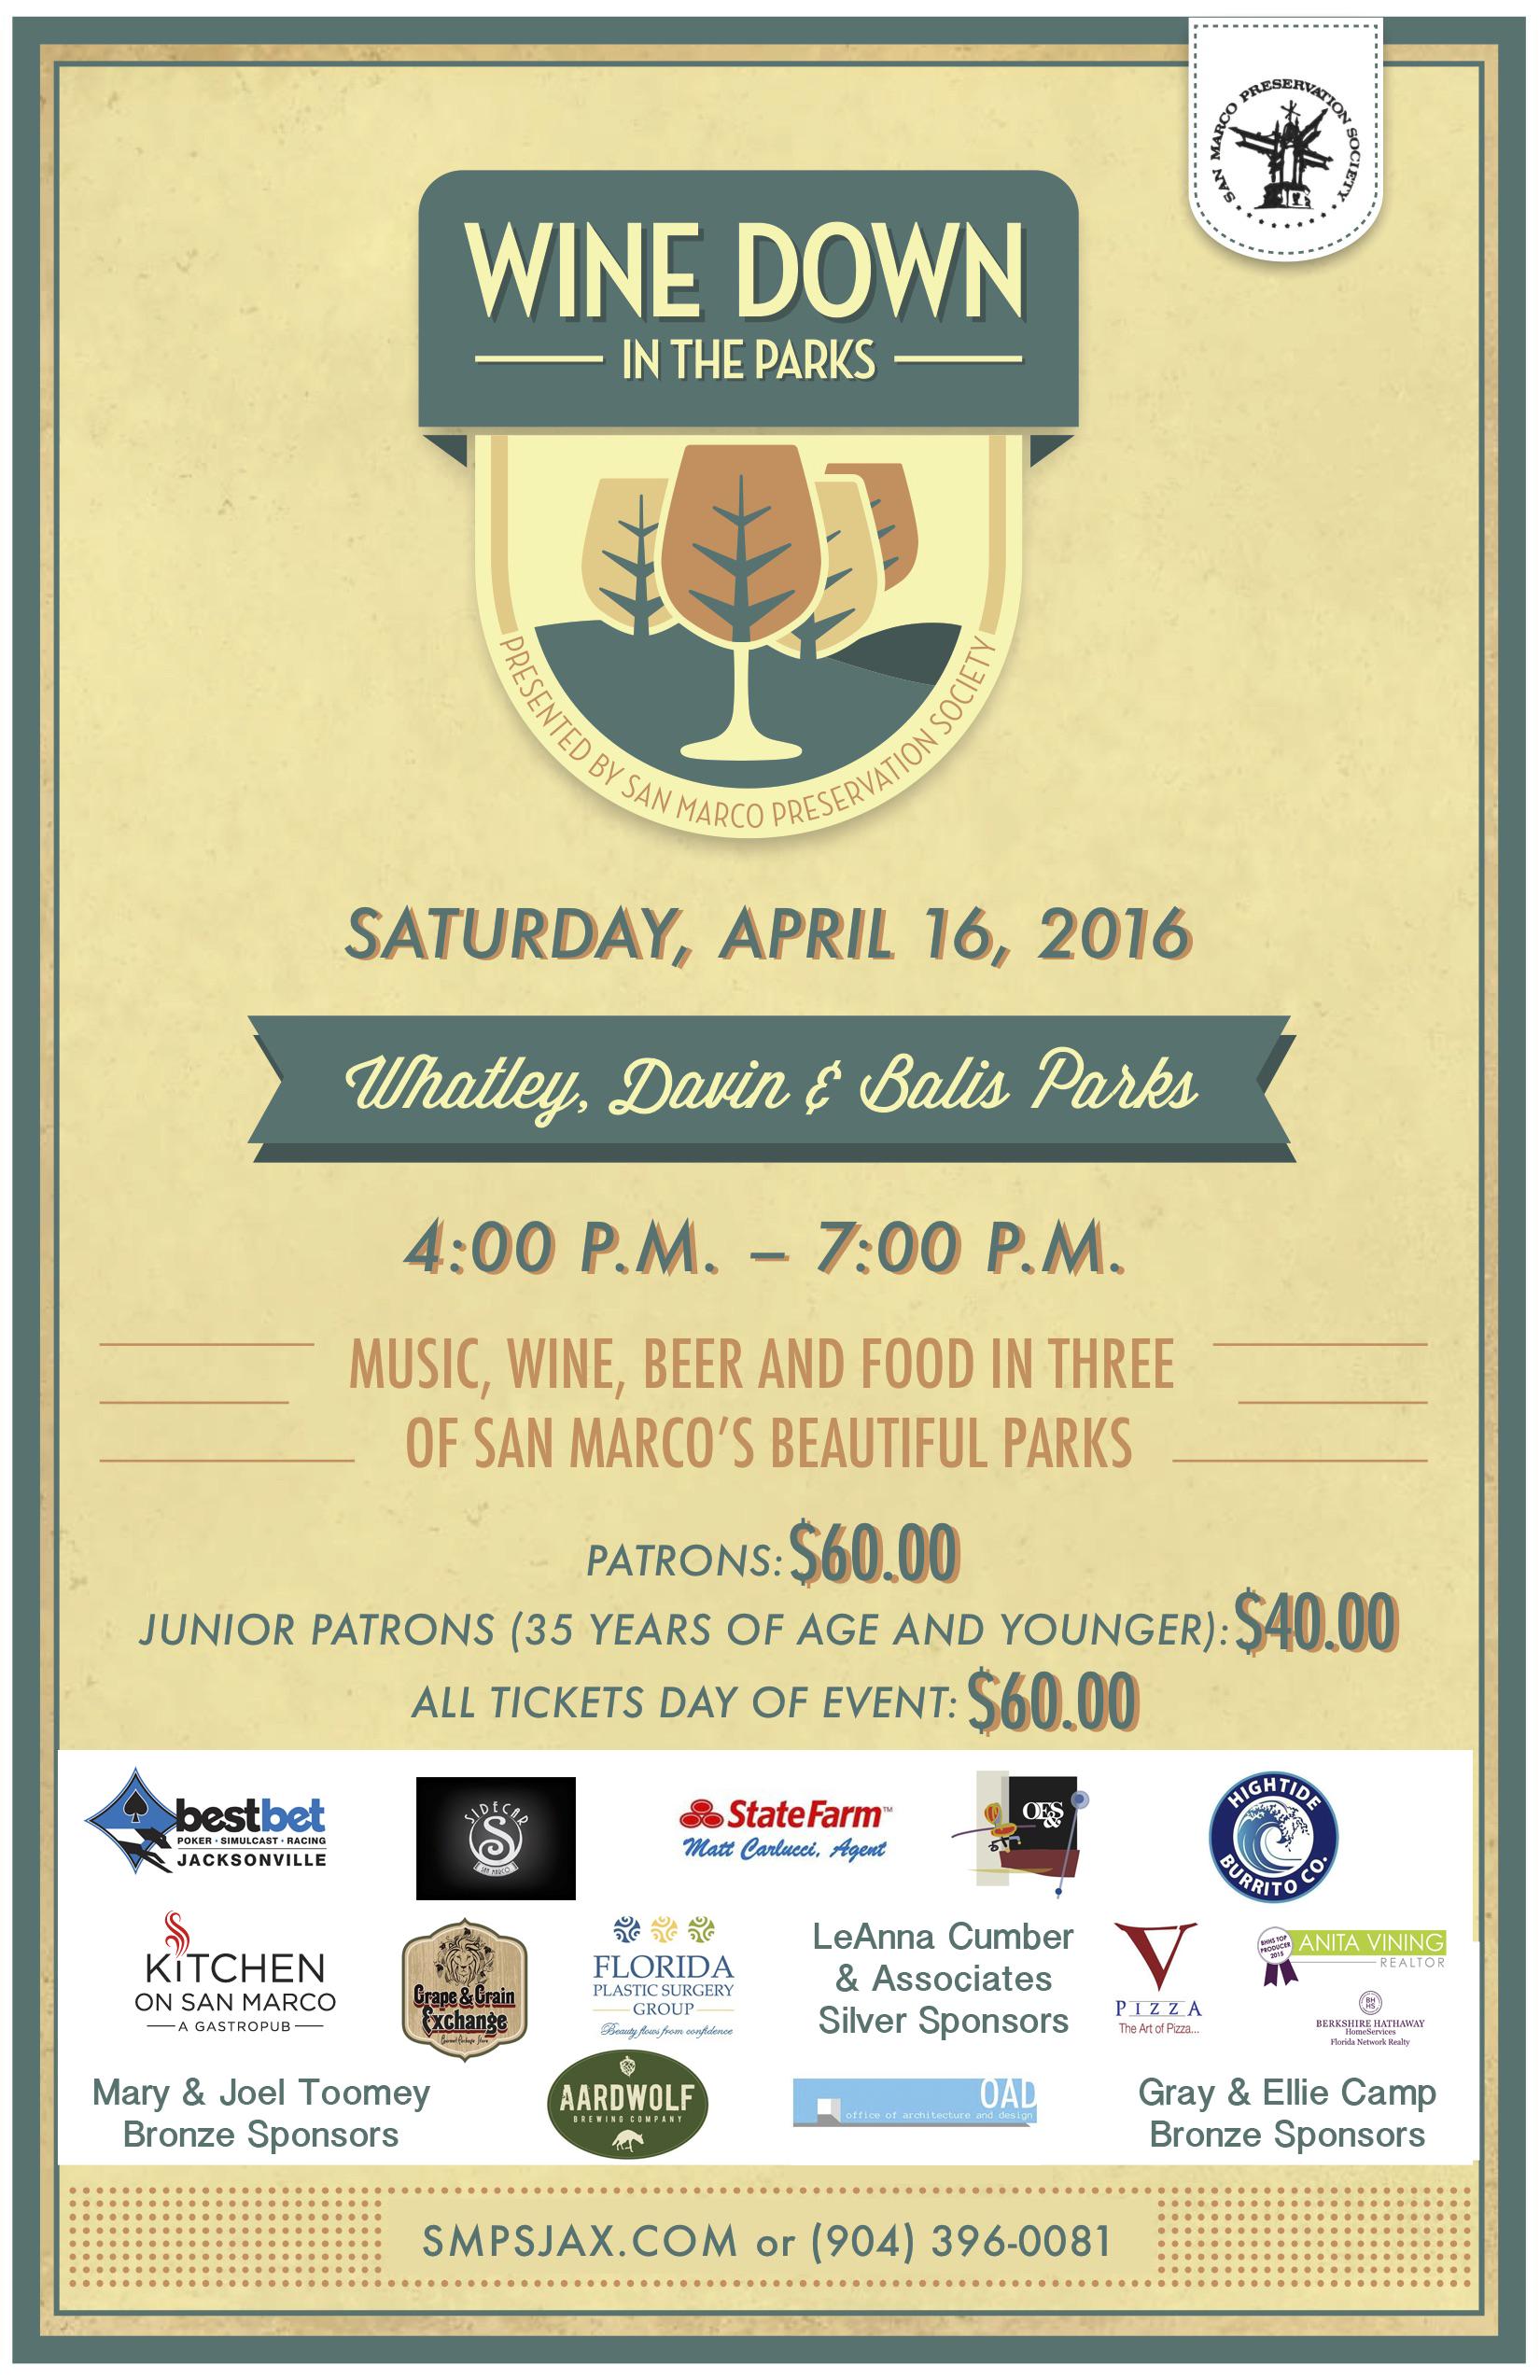 Wine Down in the Parks - 2106 Poster with Sponsors (1)